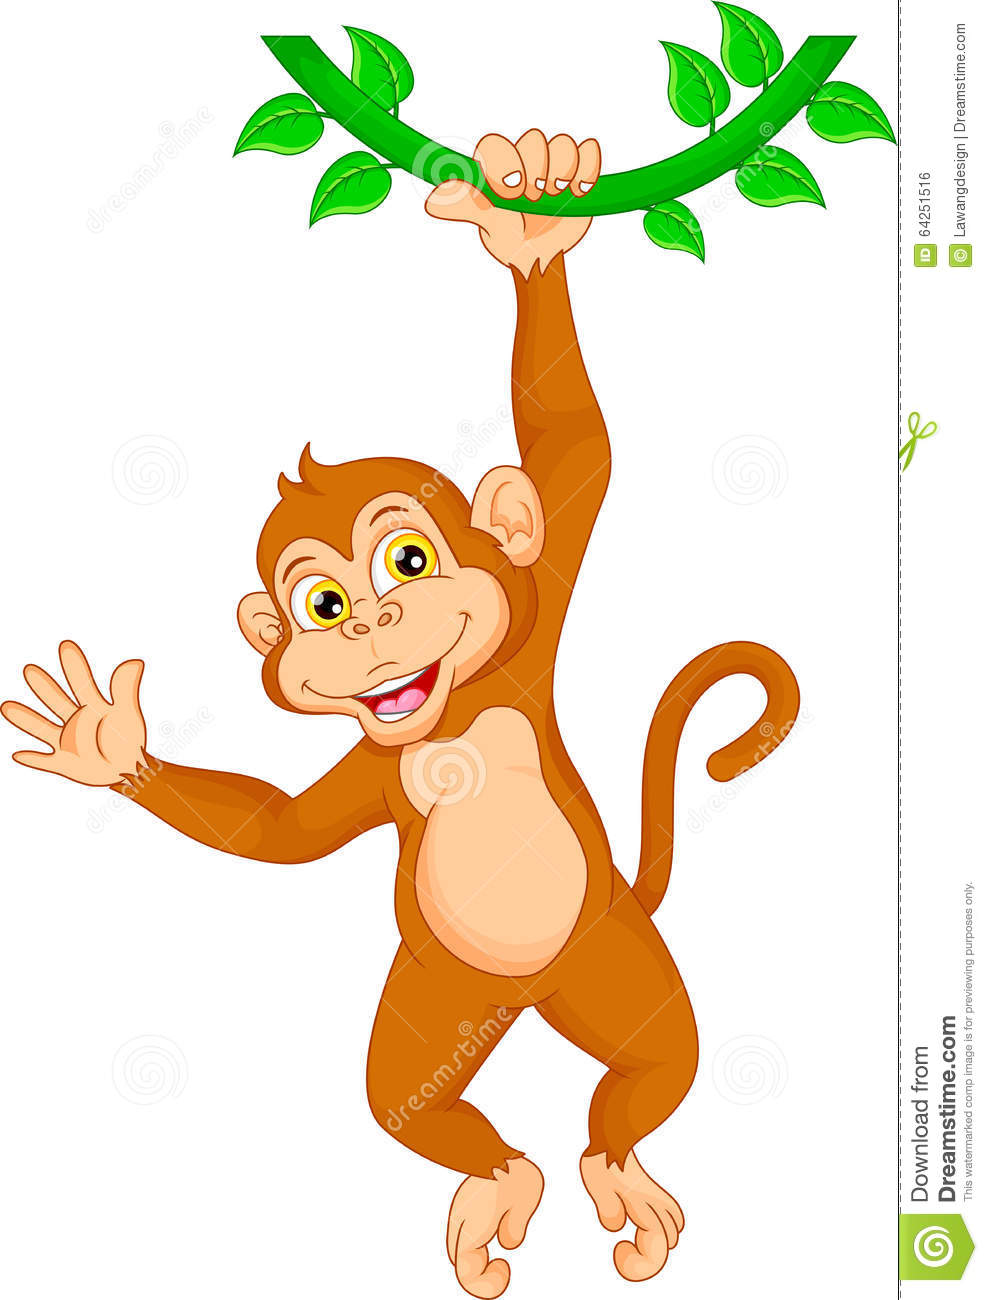 clipart monkey hanging from tree - photo #42